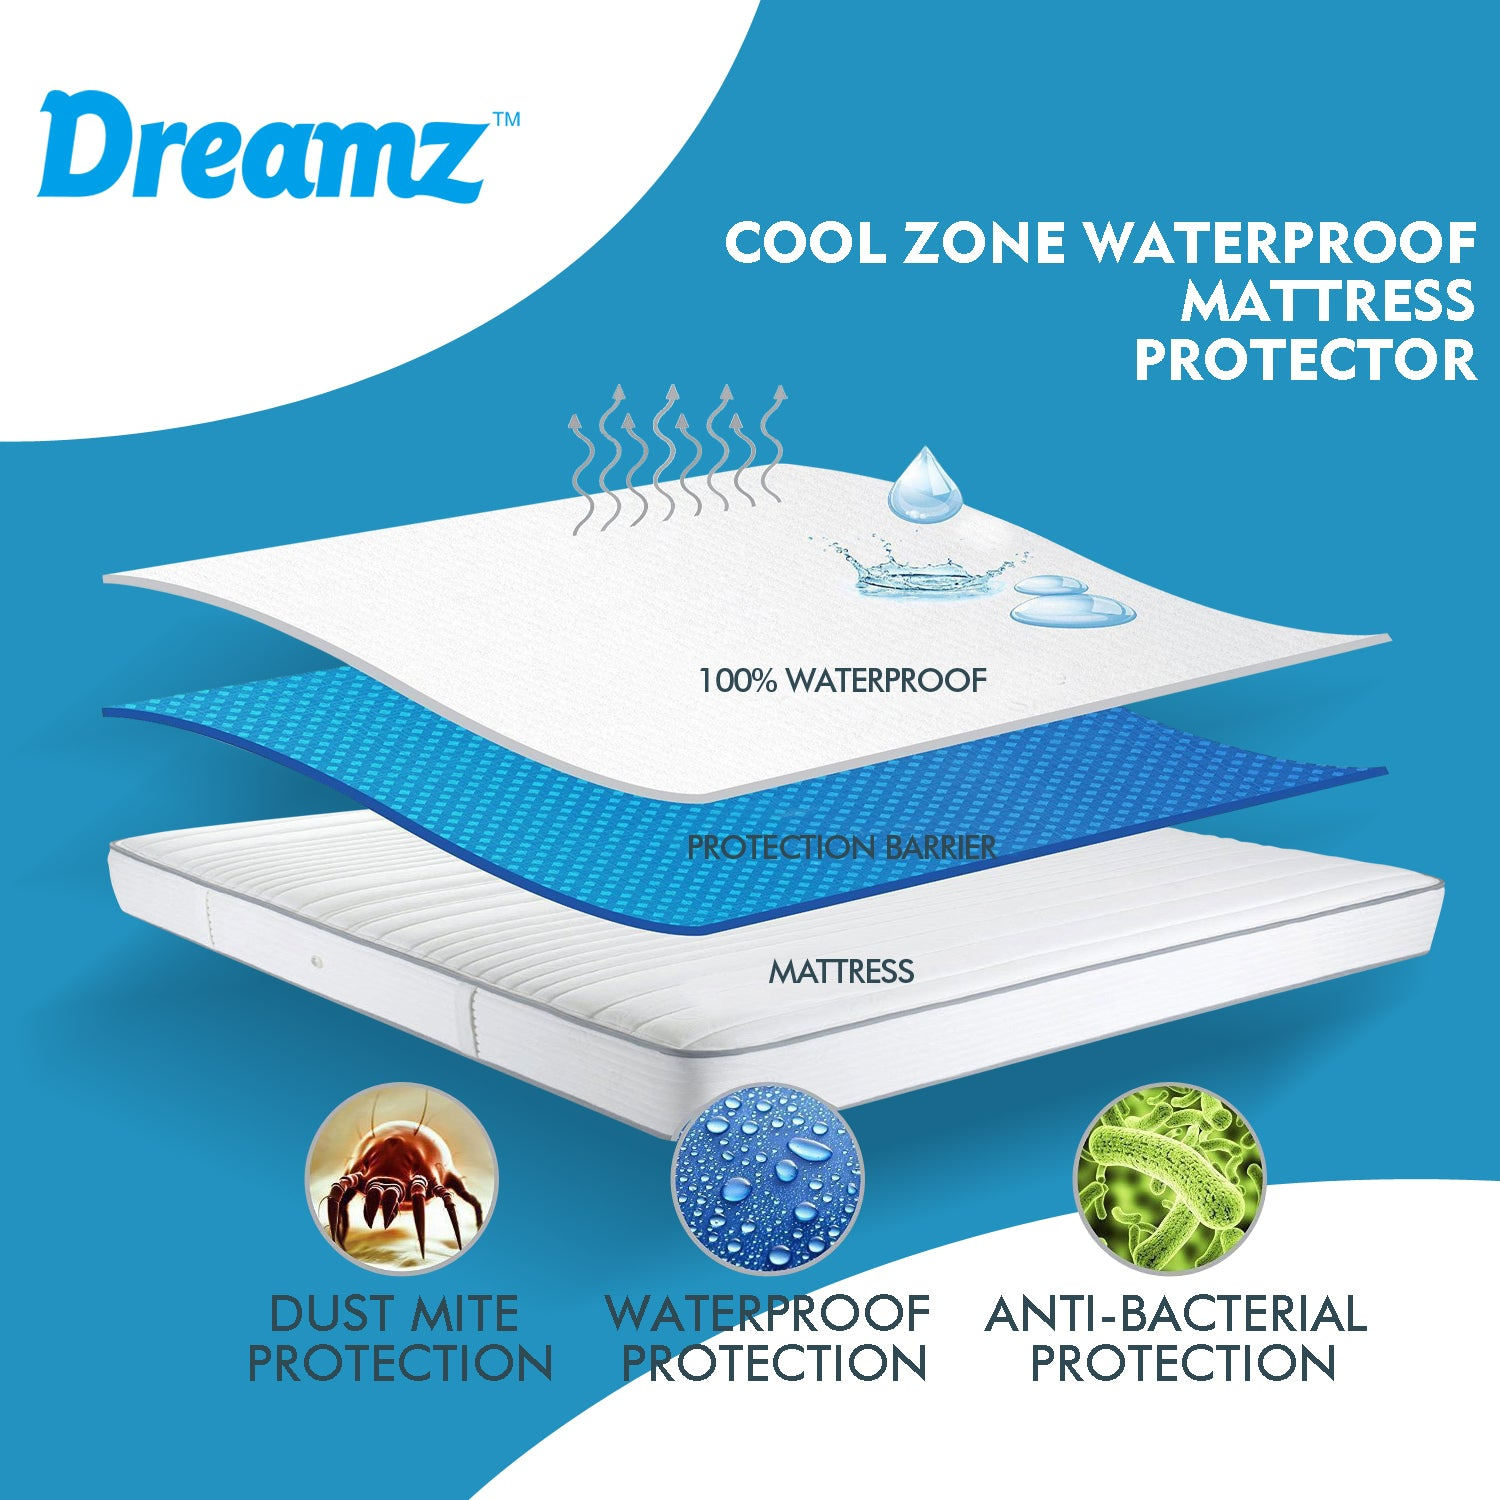 DreamZ Mattress Protector Topper Polyester Cool Fitted Cover Waterproof Queen